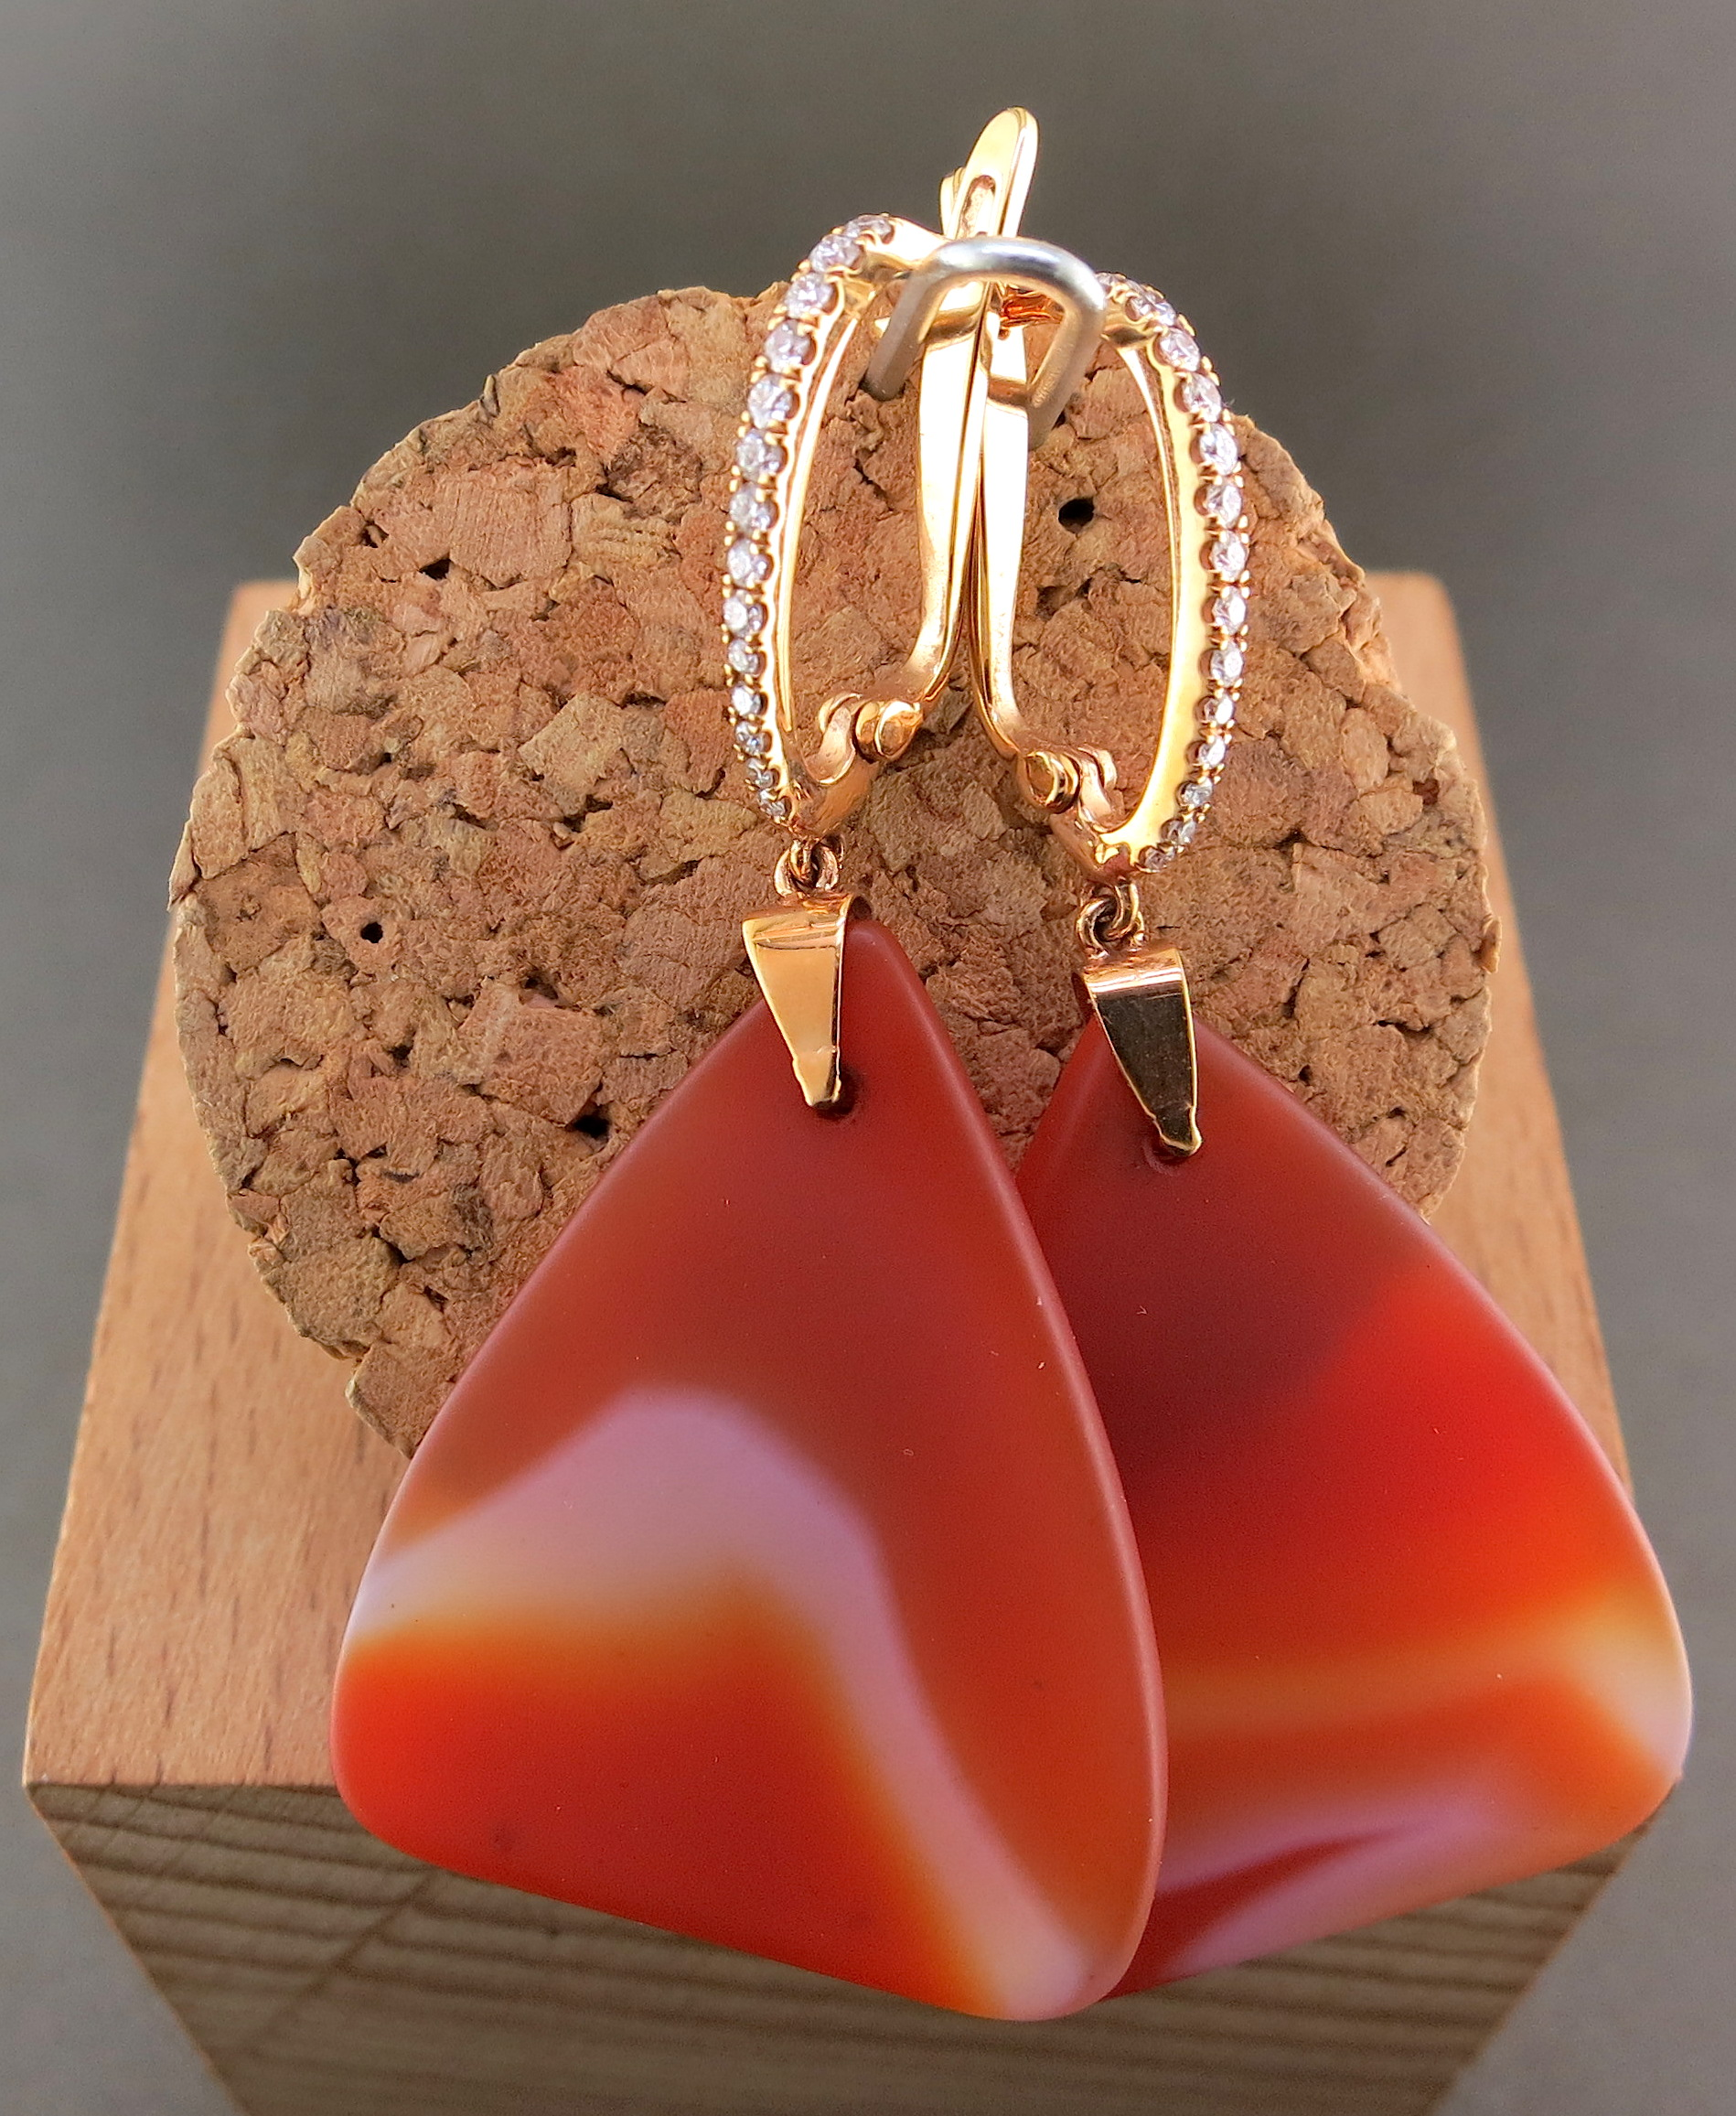 14 Karat Rose Gold and Agate Earrings, accented withDiamonds (MB647)